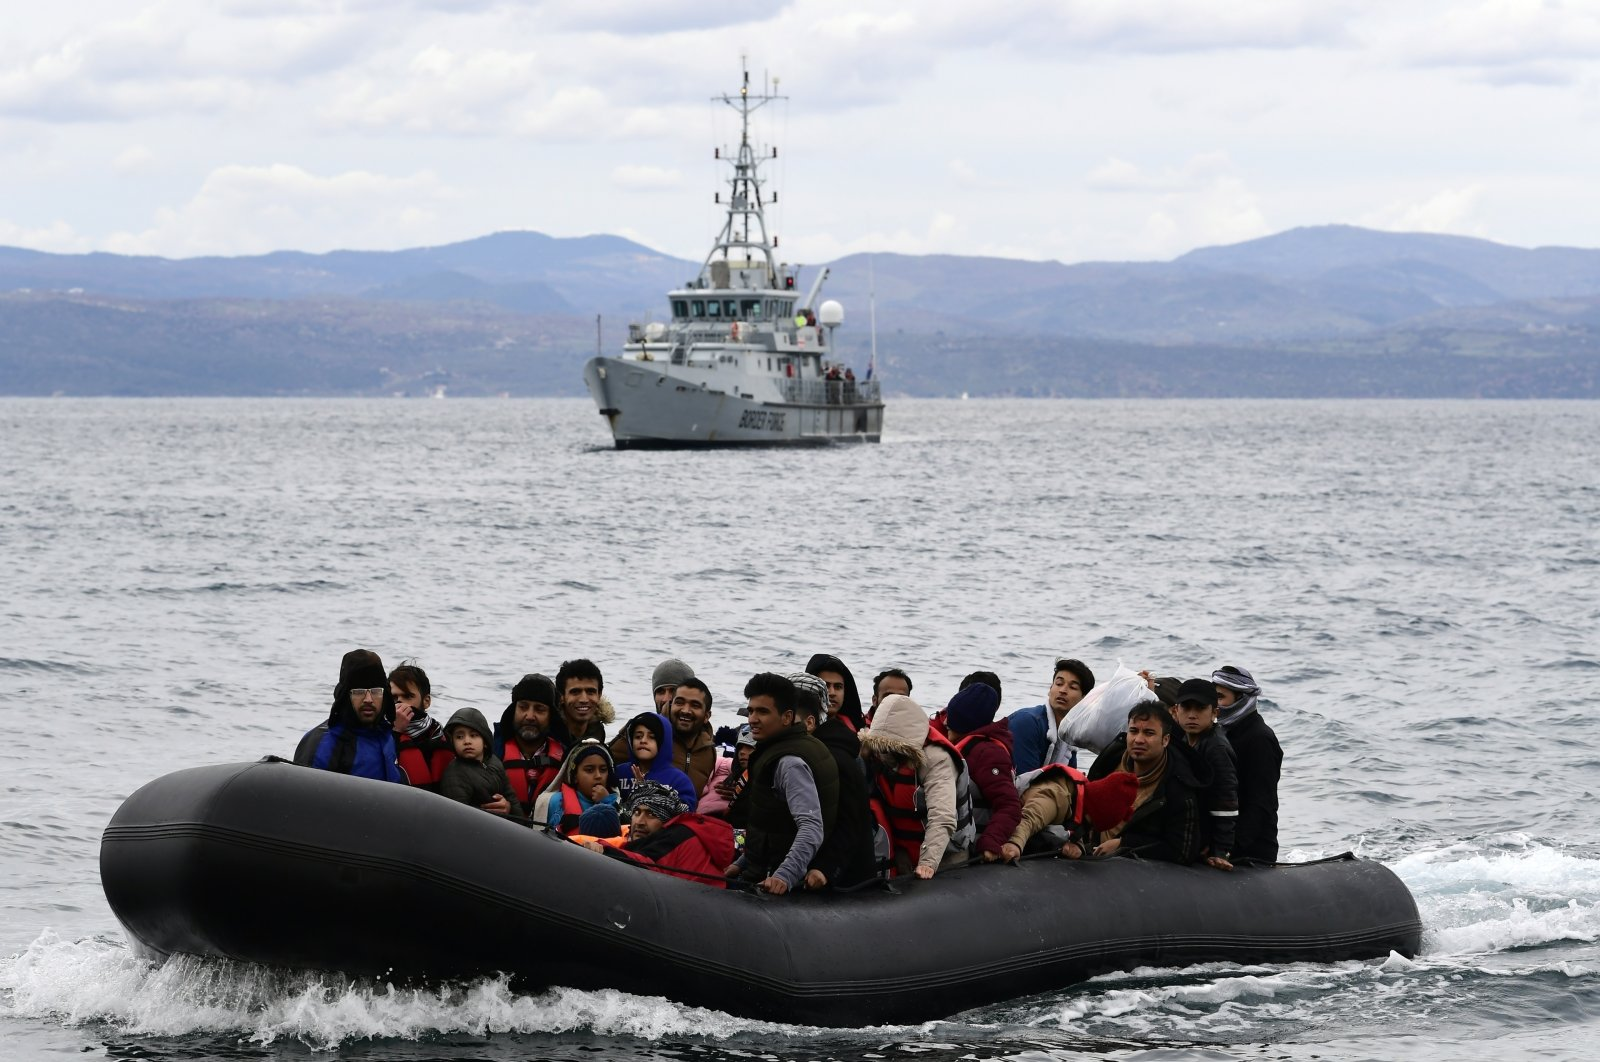 Migrants arrive aboard a dinghy accompanied by a Frontex vessel at the village of Skala Sikaminias, on the Greek island of Lesbos, after crossing the Aegean sea from Turkey, Feb. 28, 2020. (AP Photo)